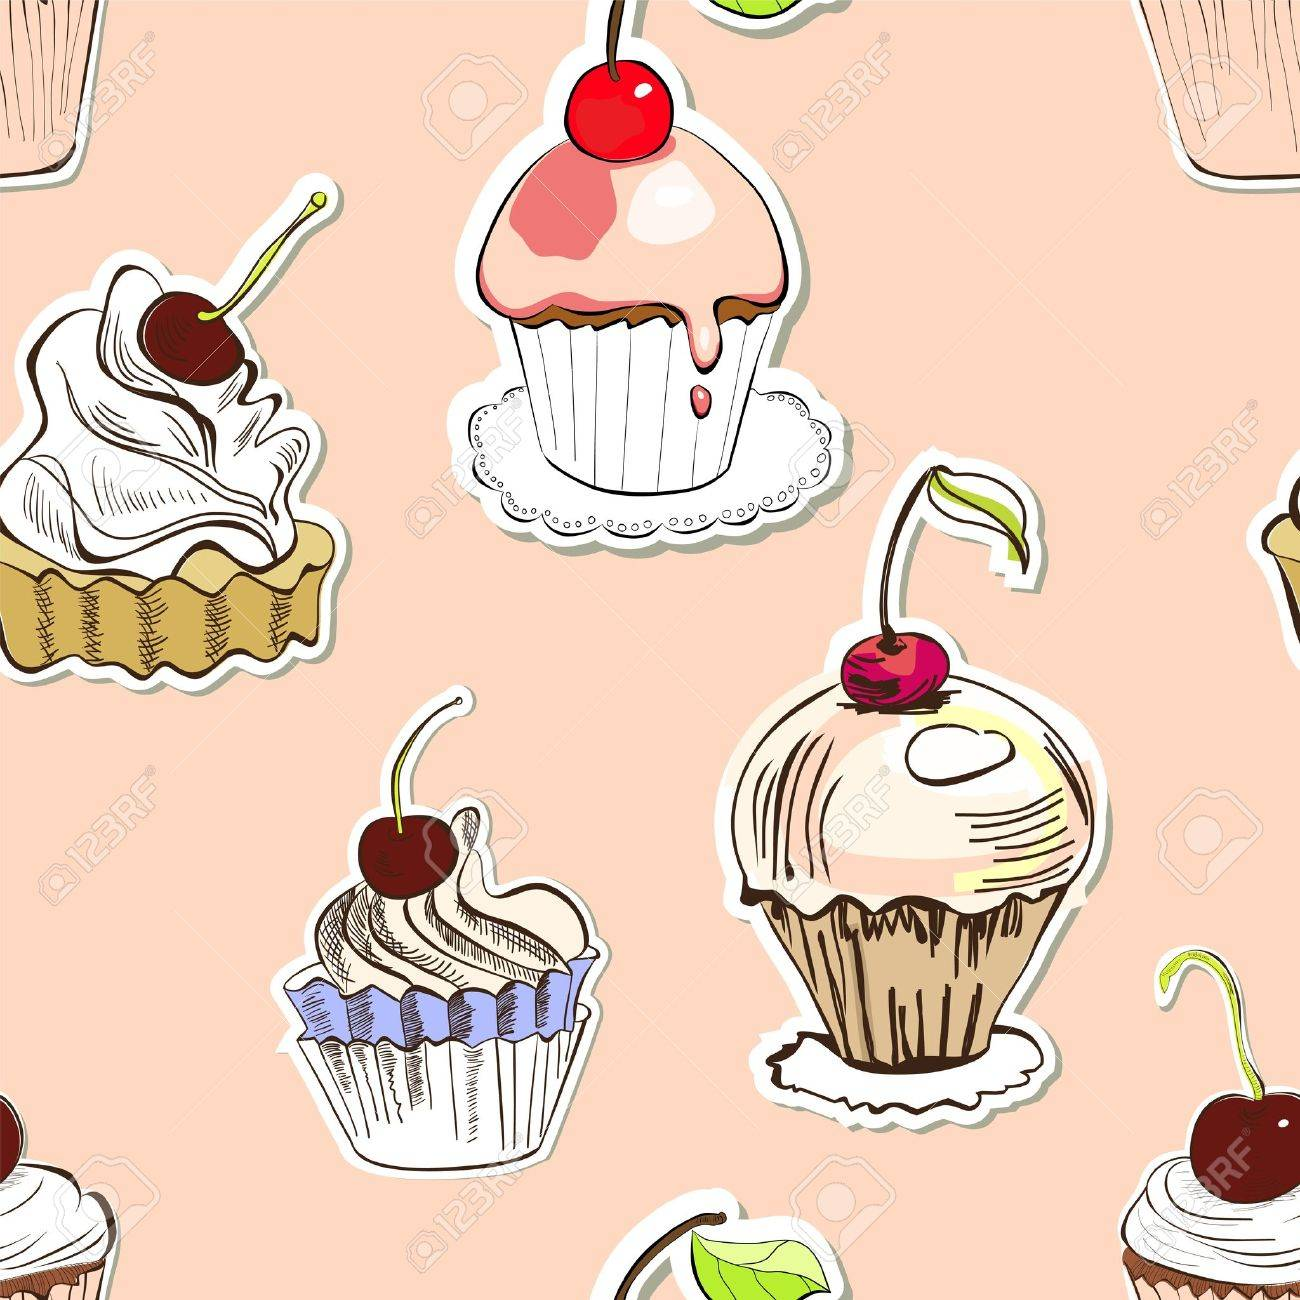 Seamless background with cake Stock Vector - 12930950